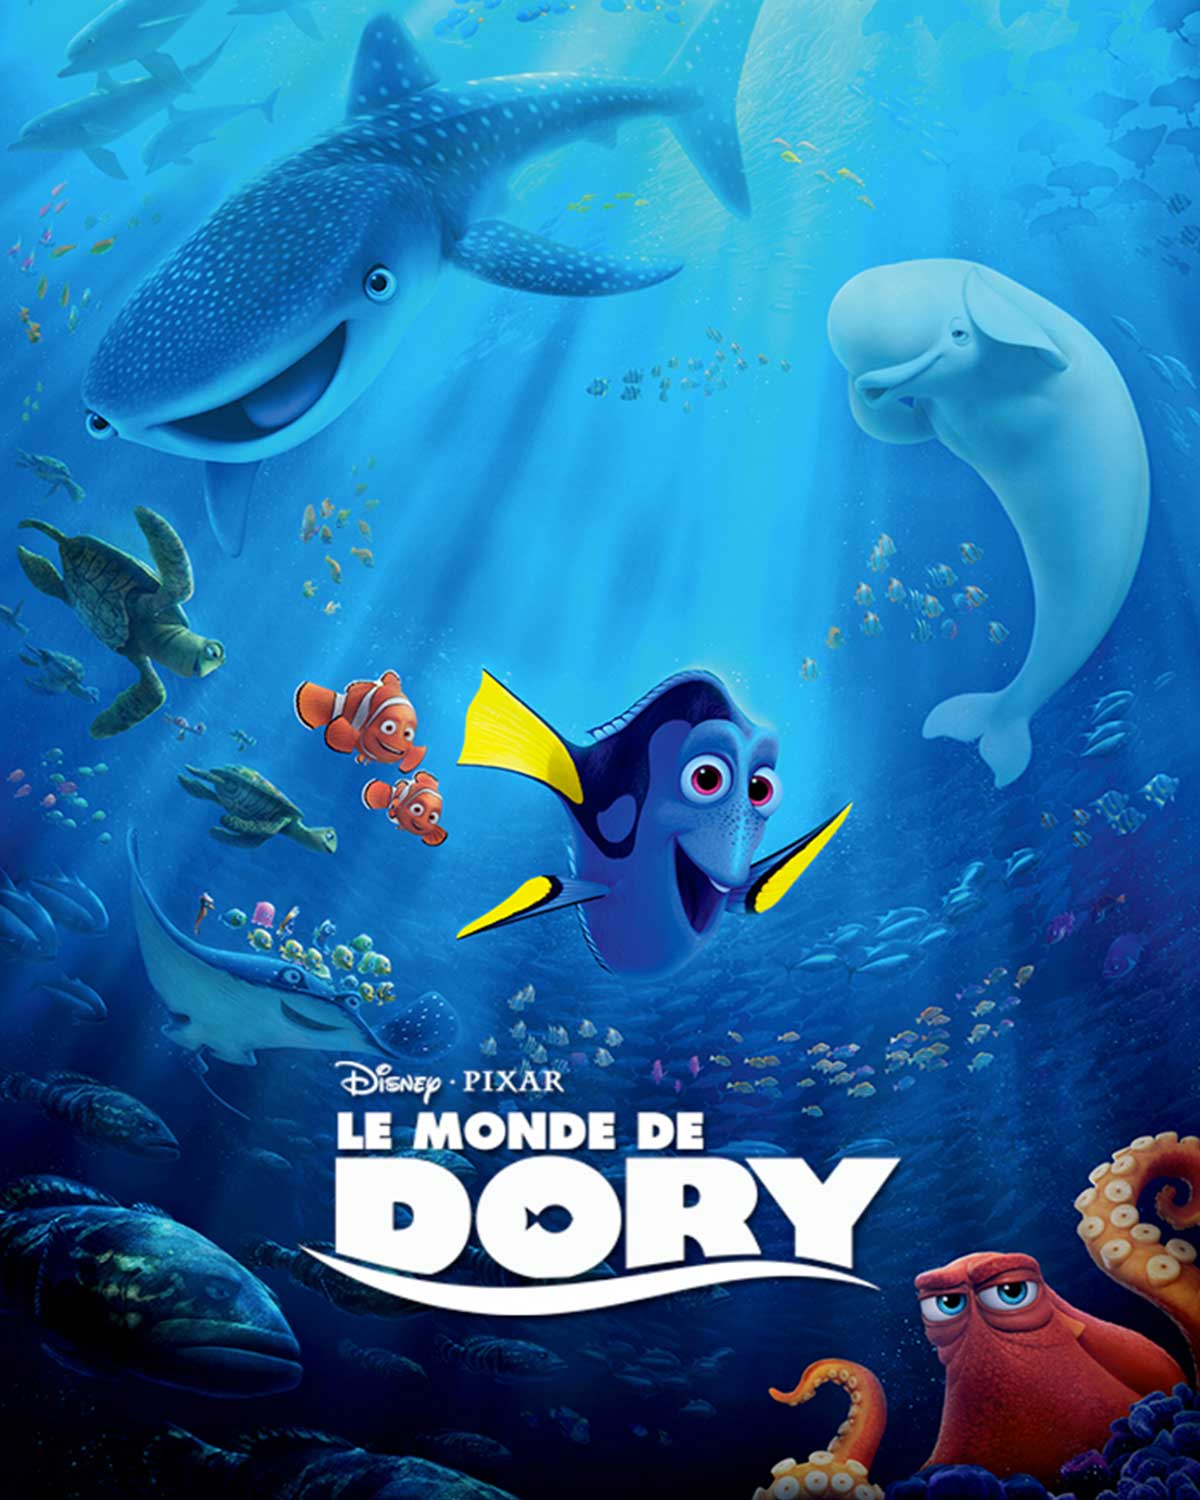 Le Monde de Dory Love & friendship Le Professeur de violon